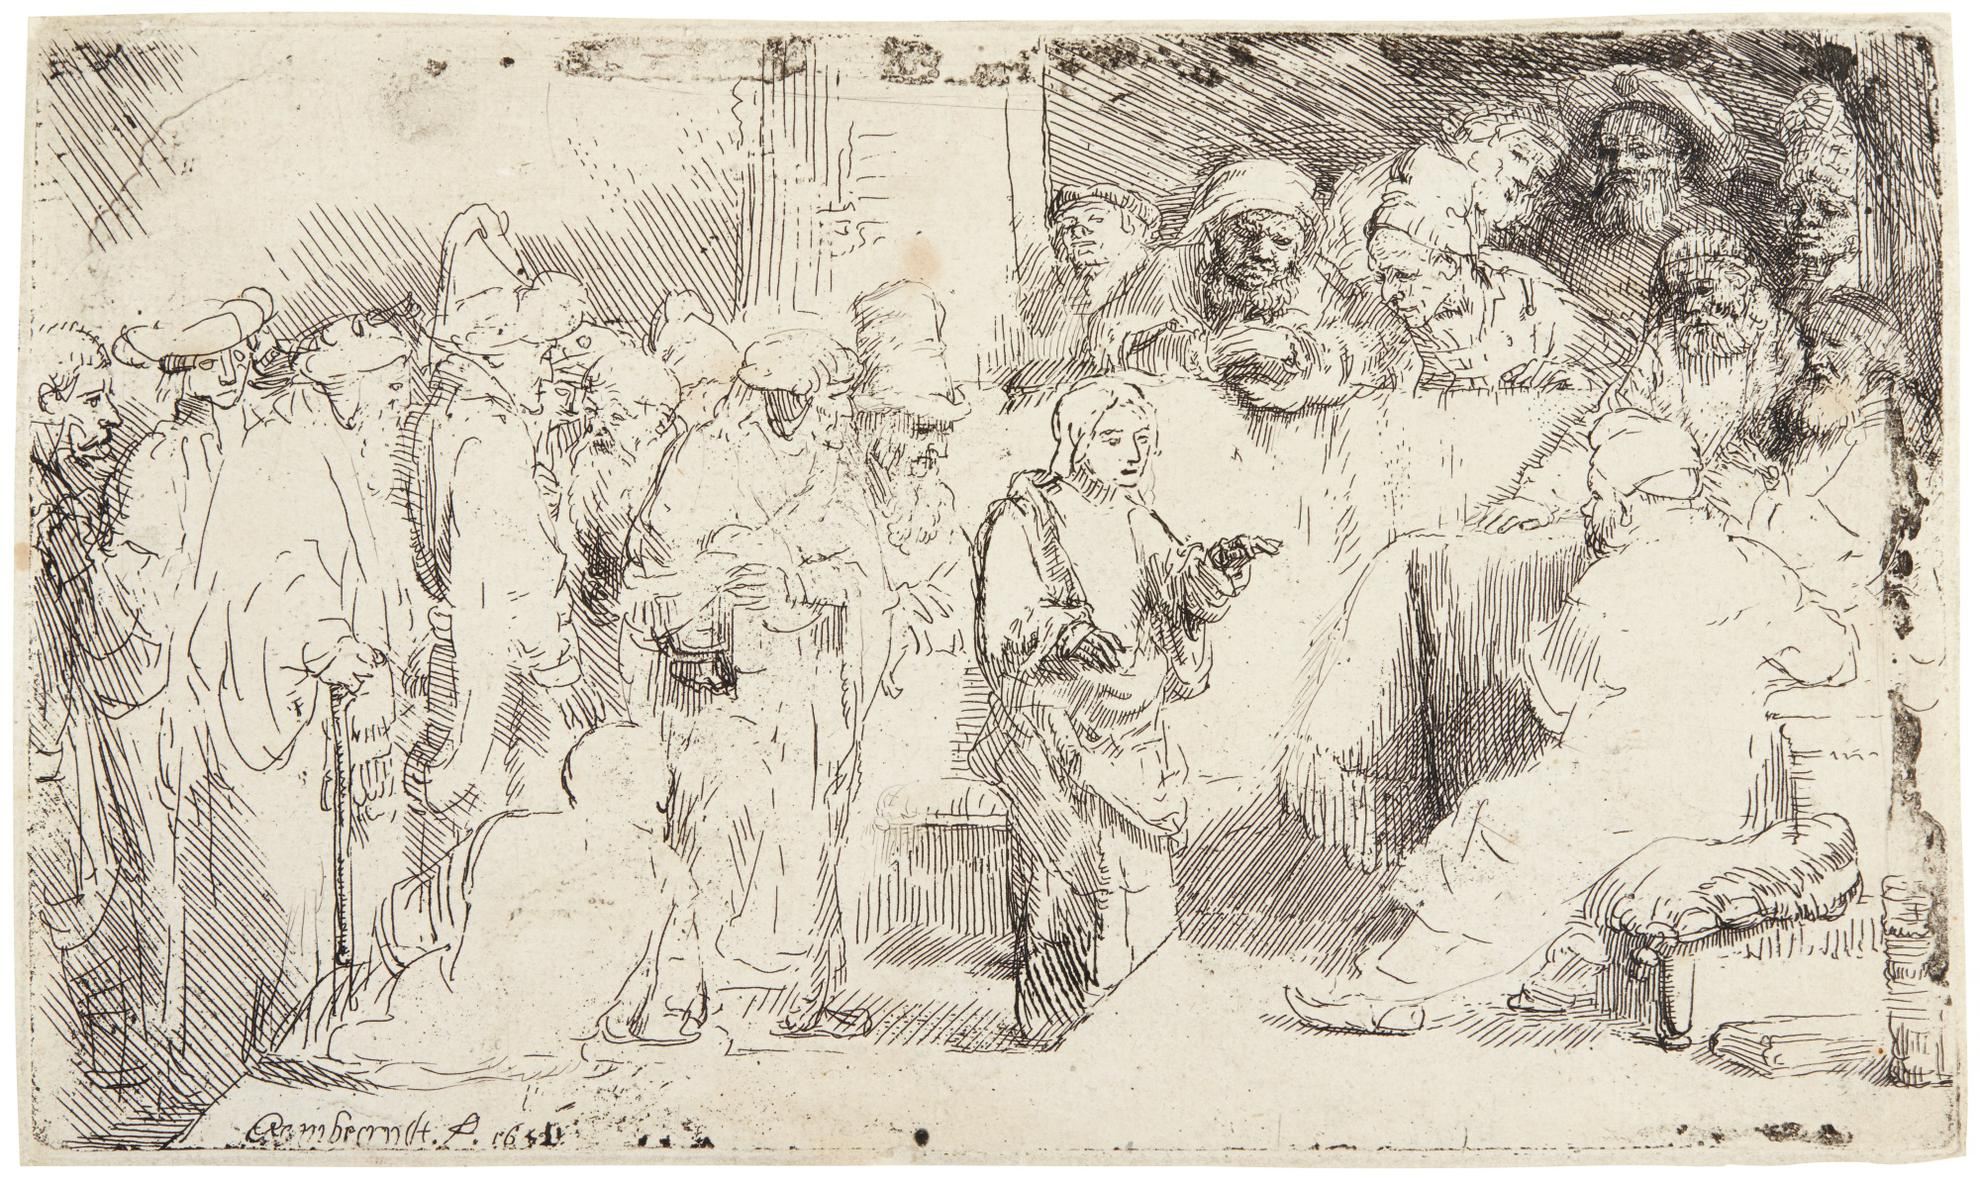 Rembrandt van Rijn-Christ Disputing With The Doctors: A Sketch (B., Holl. 65; New Holl. 267; H. 257)-1652